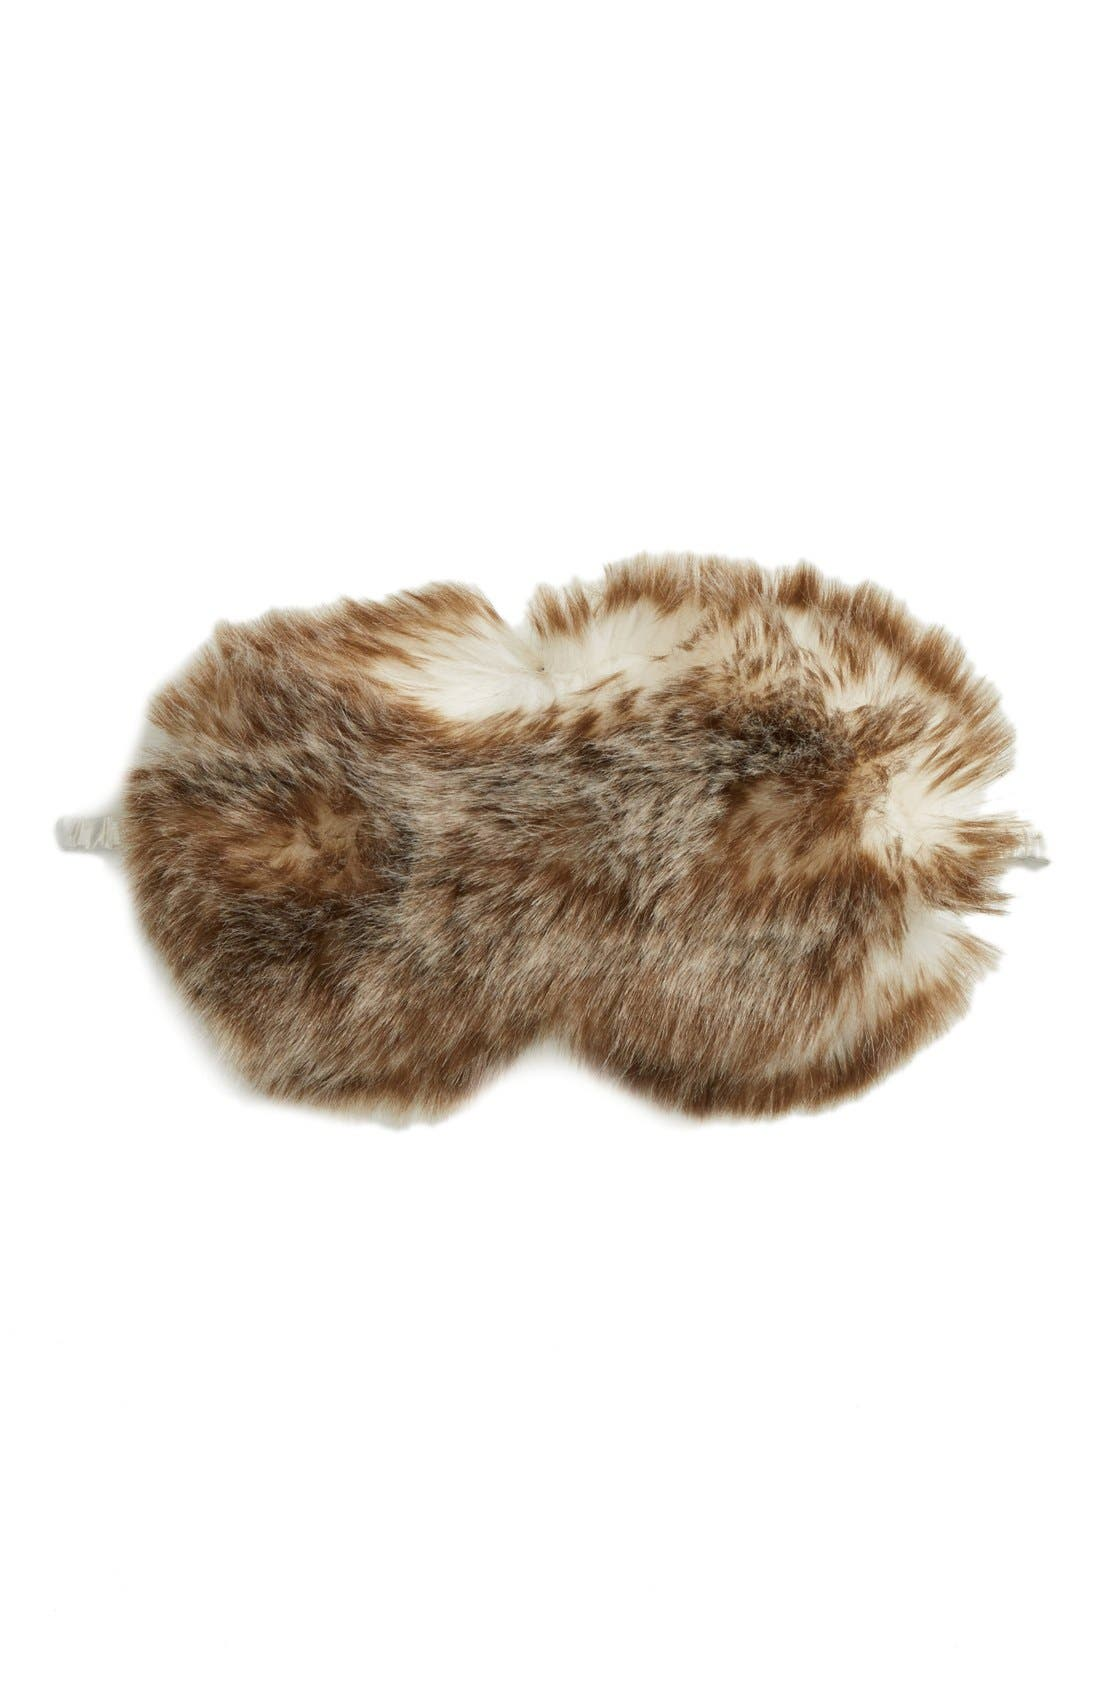 Nordstrom Faux Fur Eye Mask,                             Main thumbnail 5, color,